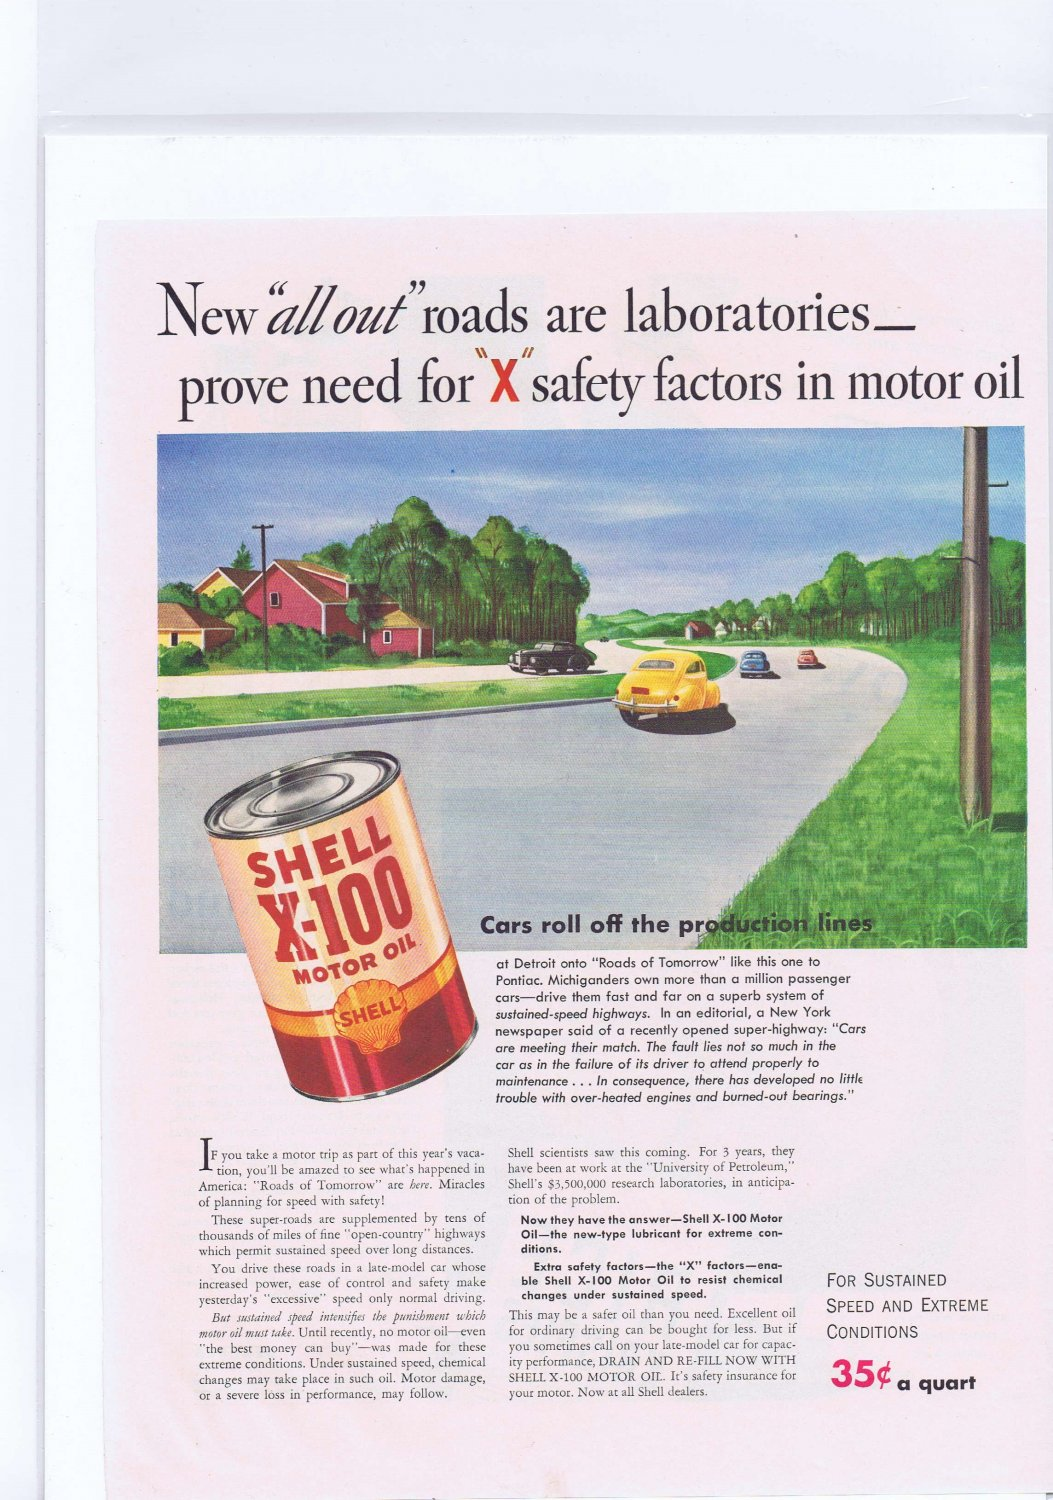 1941 Shell X-100 Motor Oil Original Vintage Advertisement Roads of Tomorrow